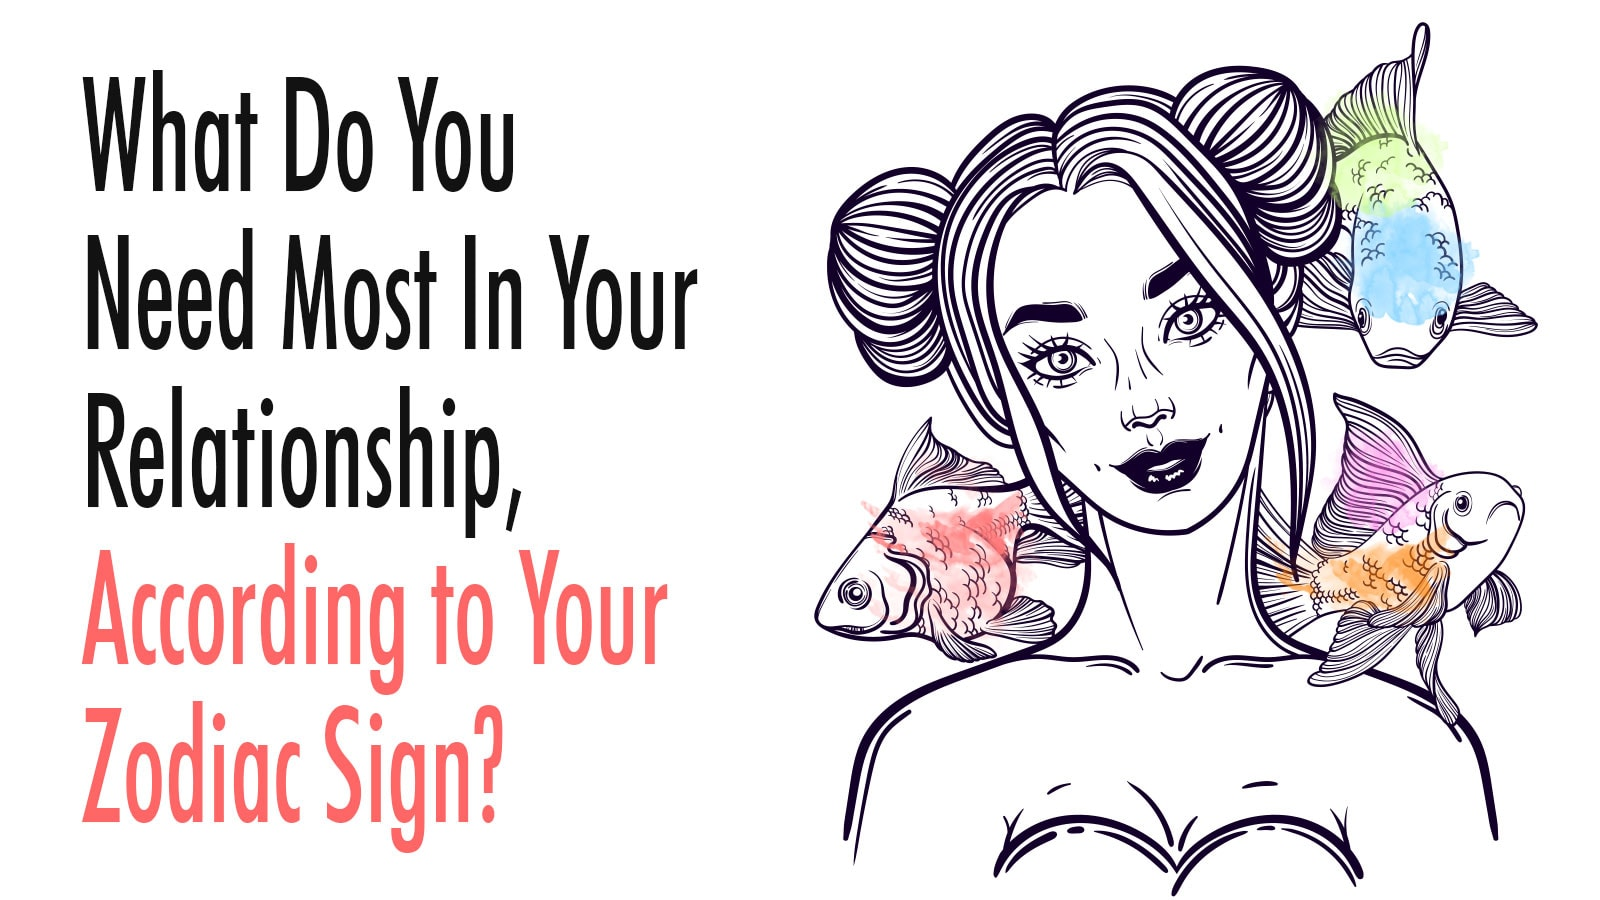 What Do You Need Most In Your Relationship, According to Your Zodiac Sign?